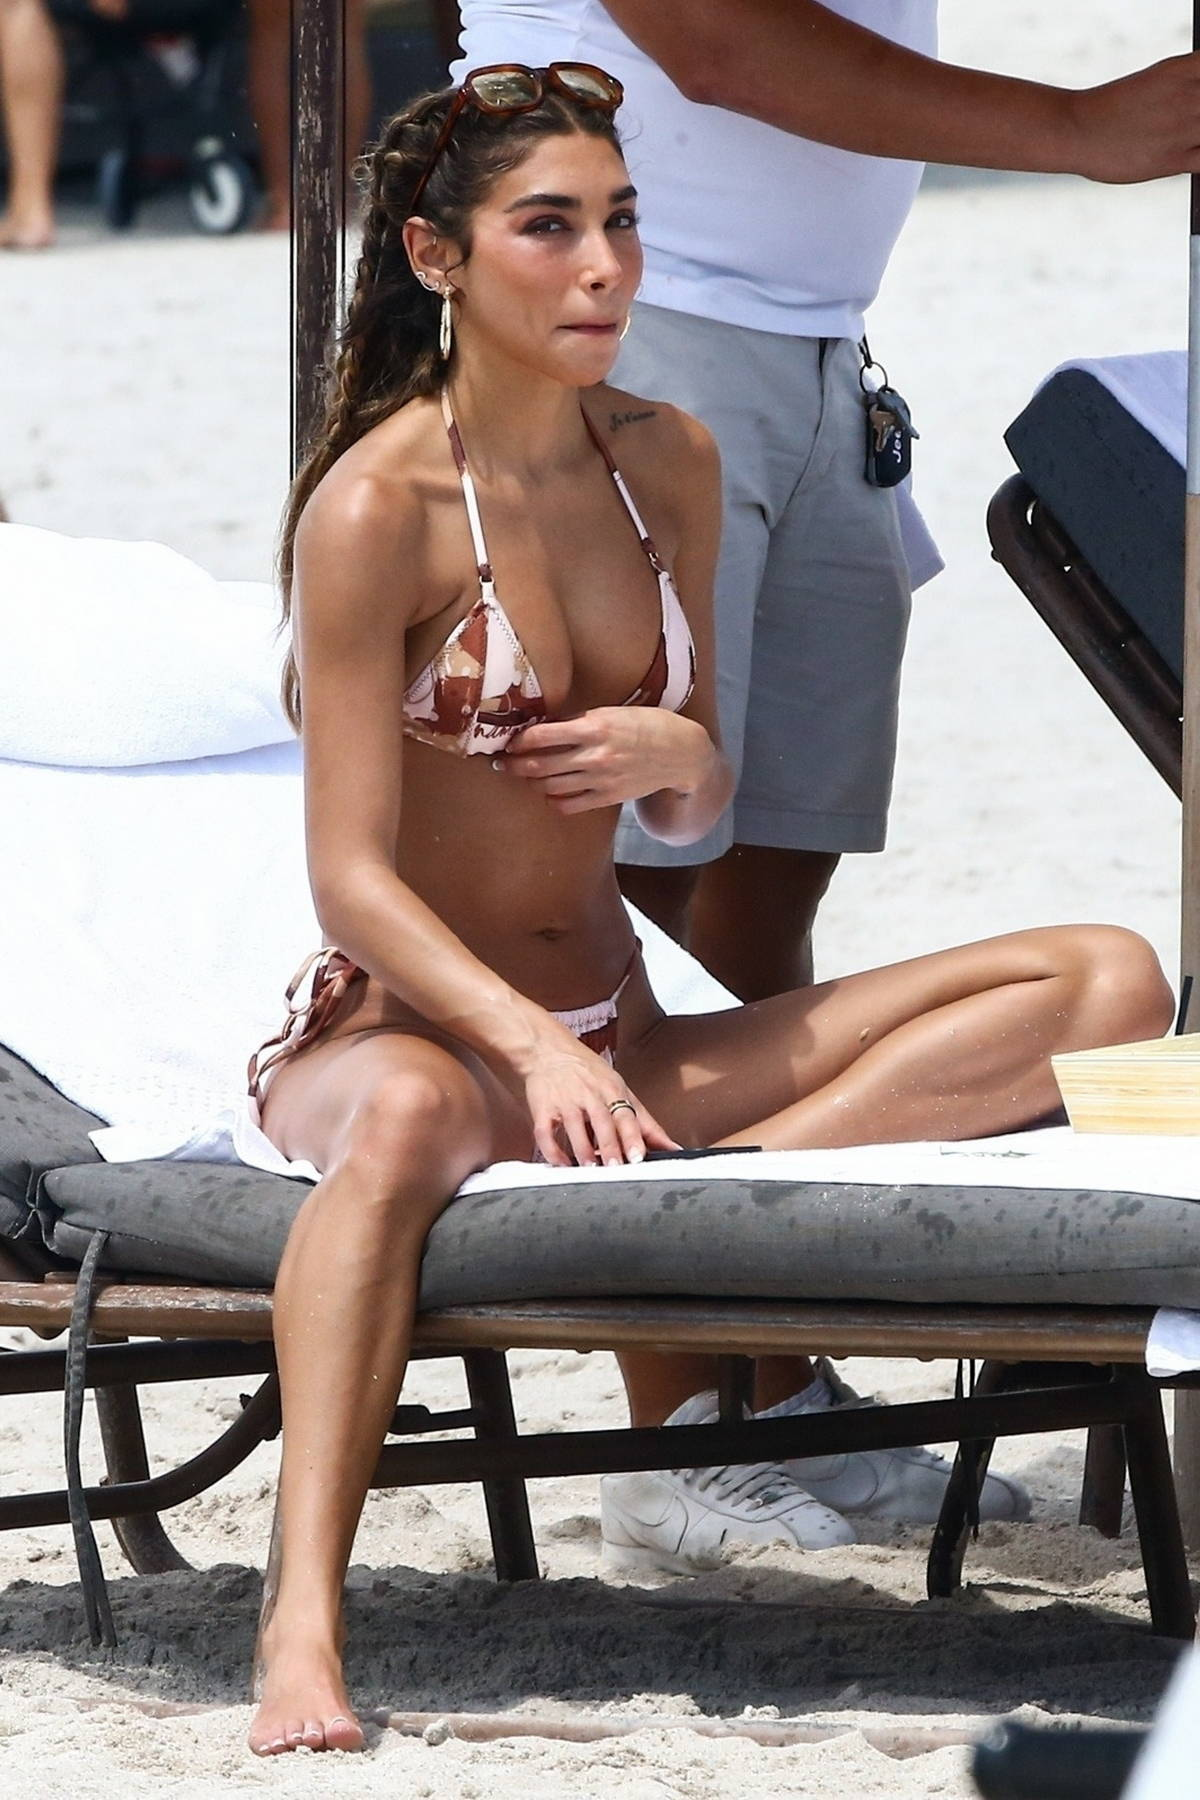 Chantel Jeffries shows off her bikini body while relaxing at the beach with a friend in Miami, Florida